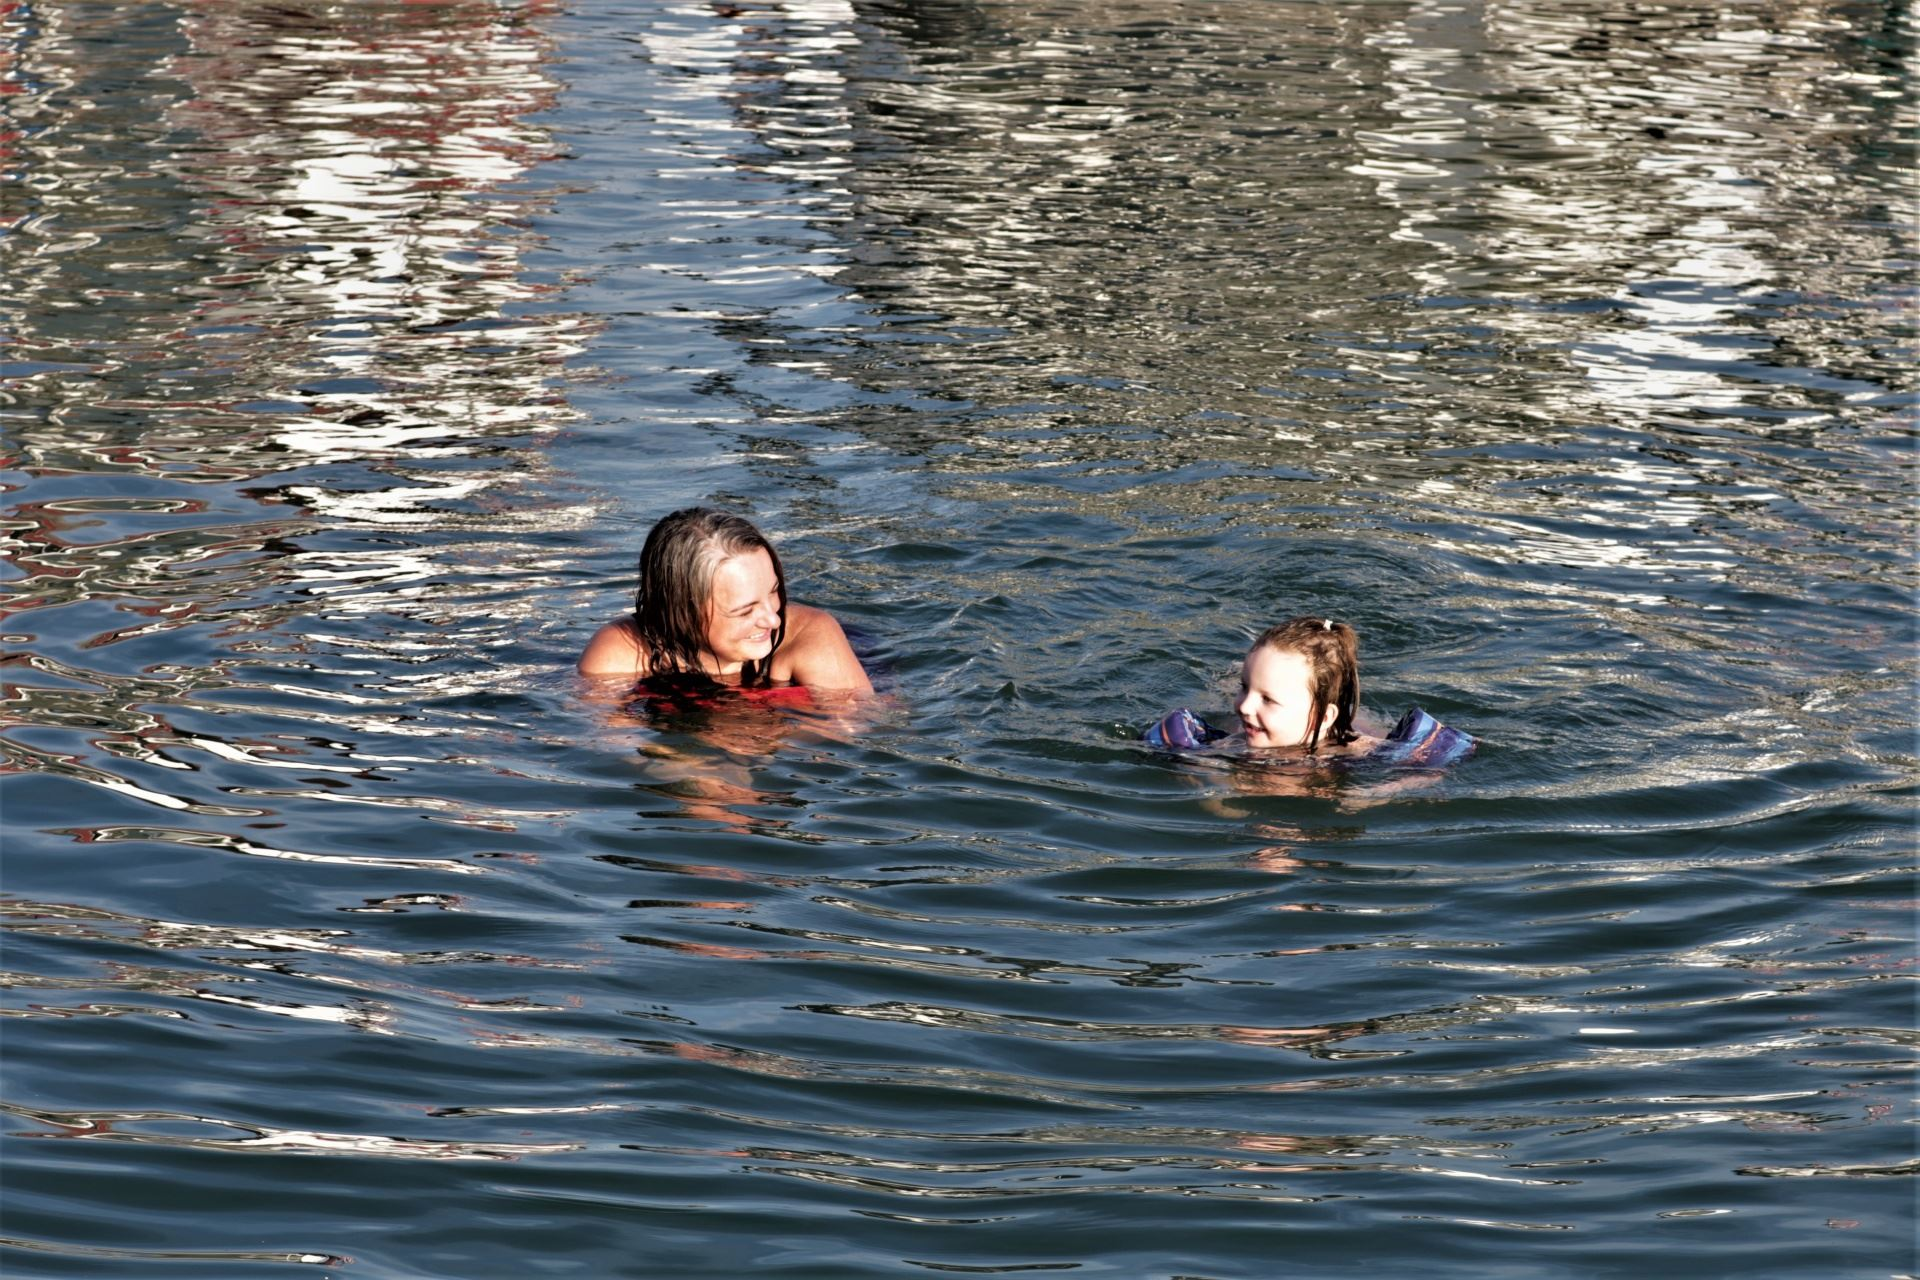 mother-and-child-swimming-in-lake